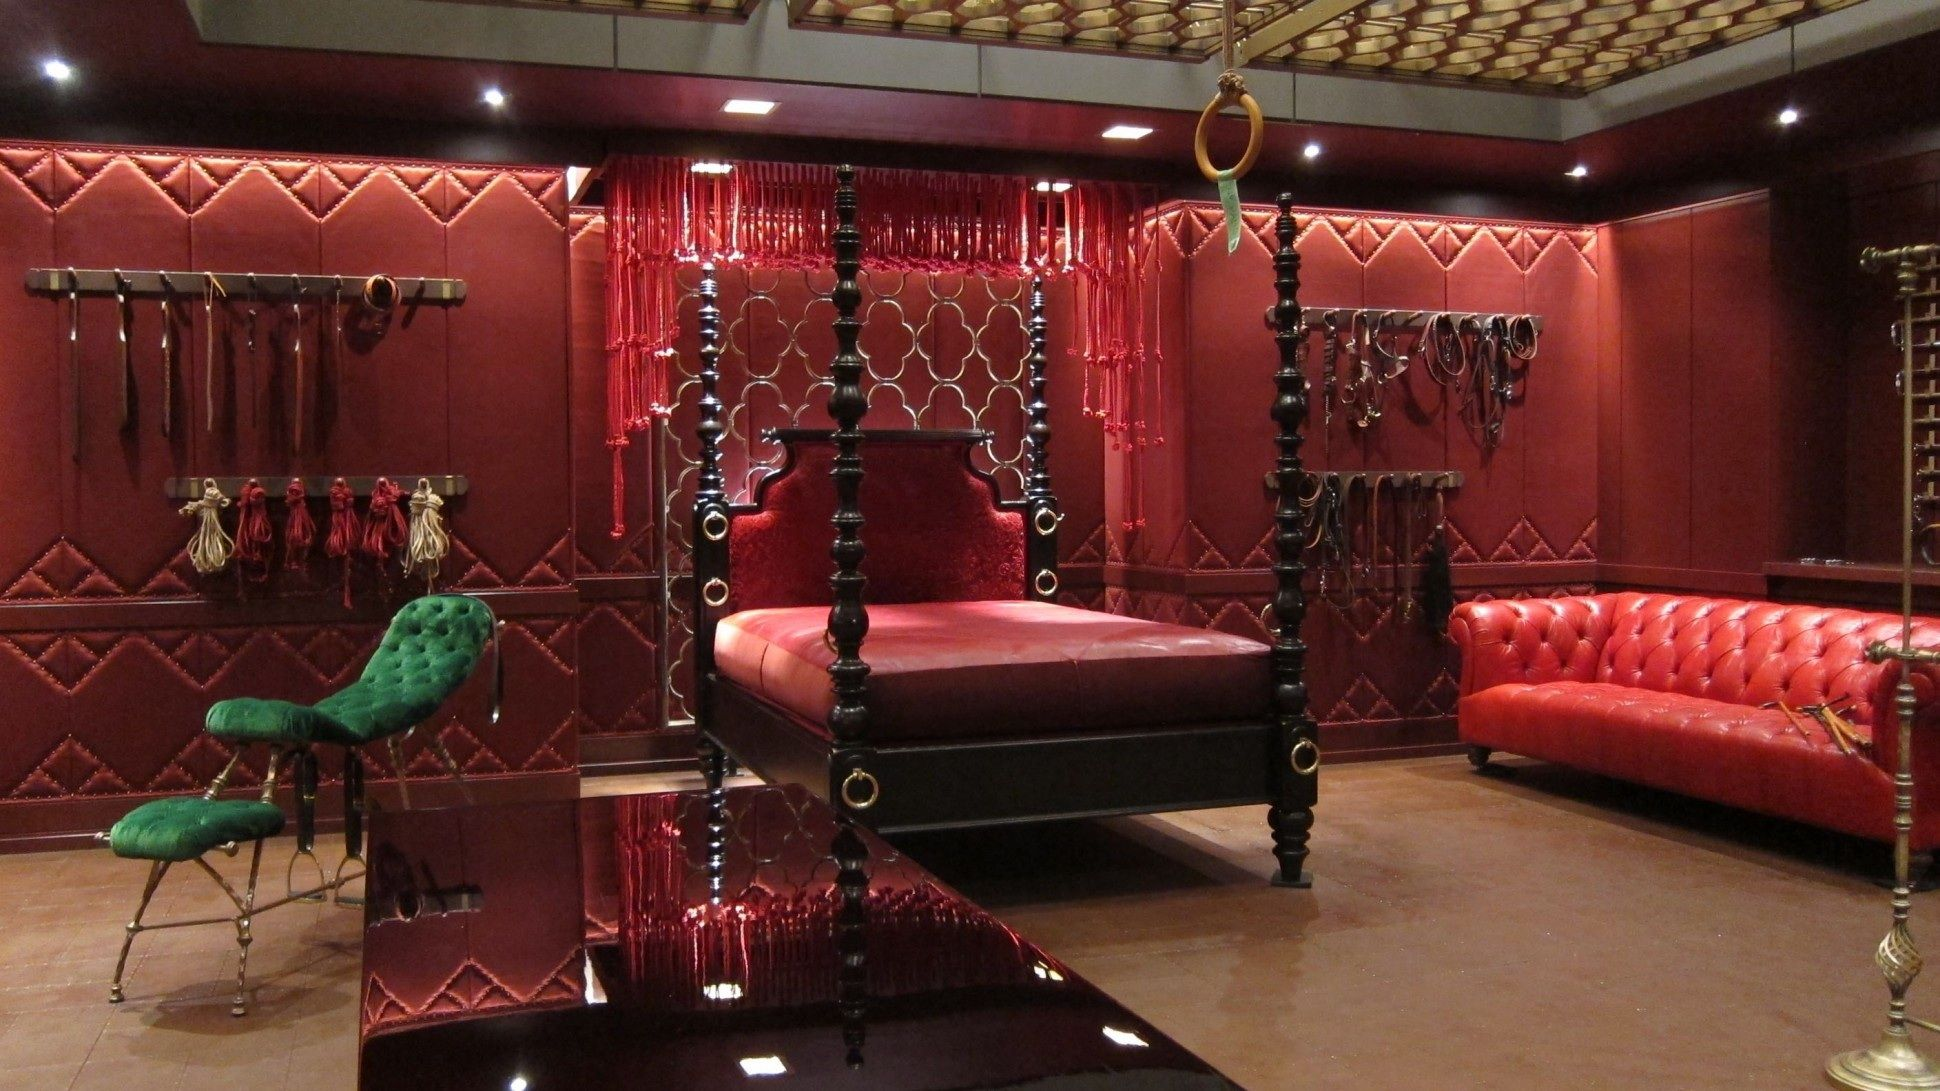 Padded Benches Living Room Chapter 1 Dracos Red Room Would Look Similar To Christian Greys